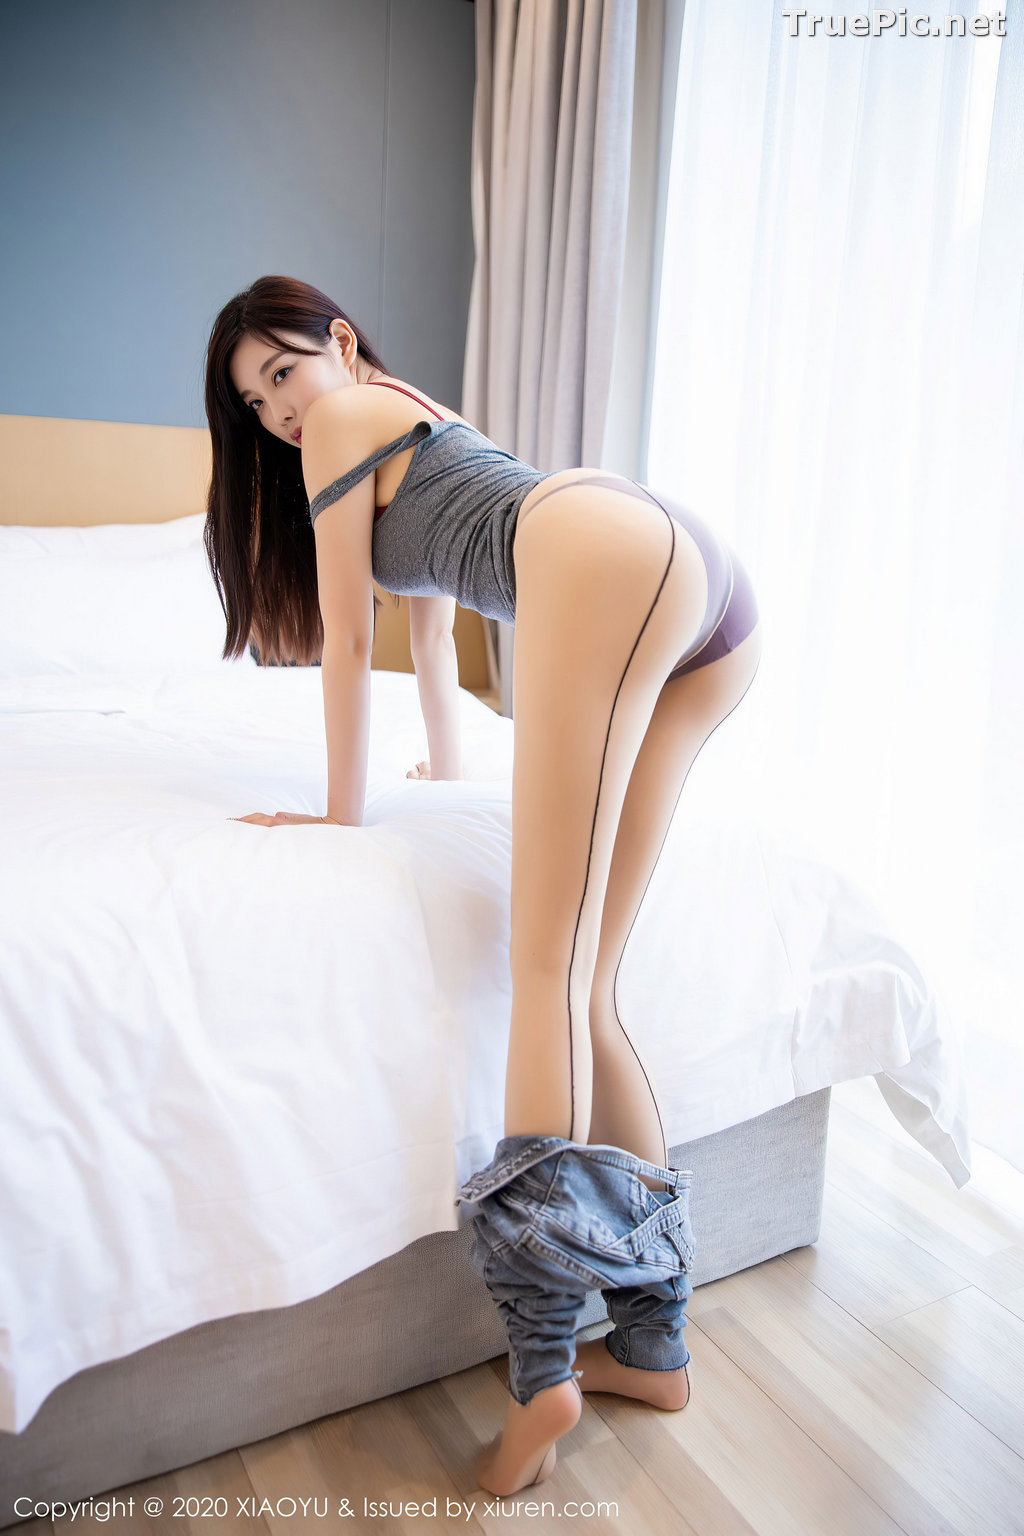 Image XiaoYu Vol.414 - Chinese Model - Yang Chen Chen (杨晨晨sugar) - Sexy Fitness Girl - TruePic.net - Picture-38